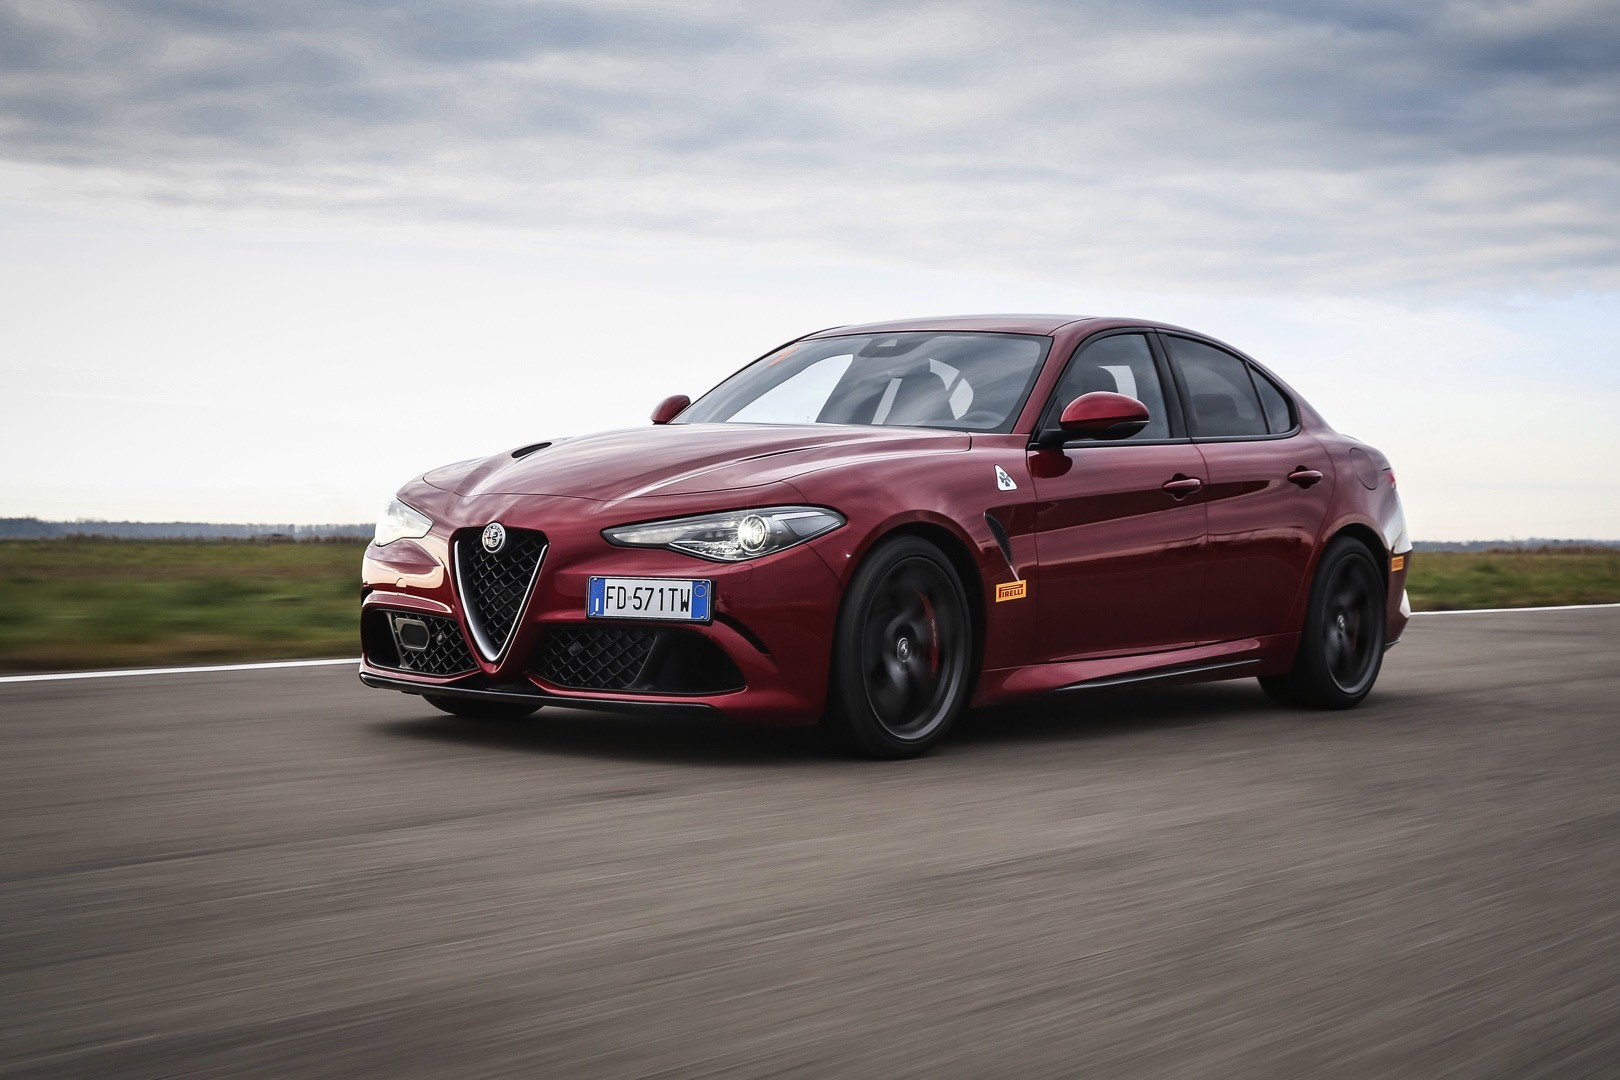 leaked alfa romeo giulia getting 350 hp 2 liter turbo is it hybrid autoevolution. Black Bedroom Furniture Sets. Home Design Ideas